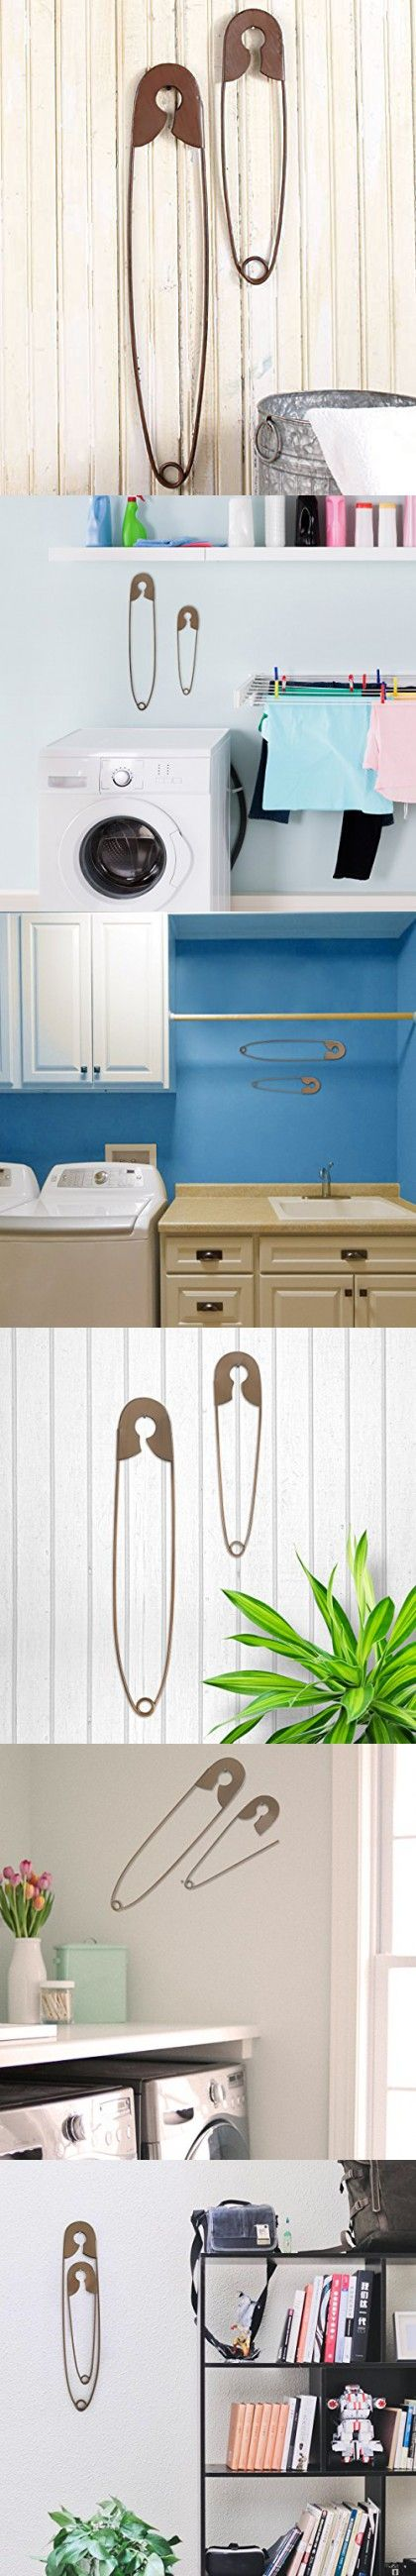 Set of 2 Large Hanging Safety Pins Rustic Color Laundry Room Wall Home Decoratio